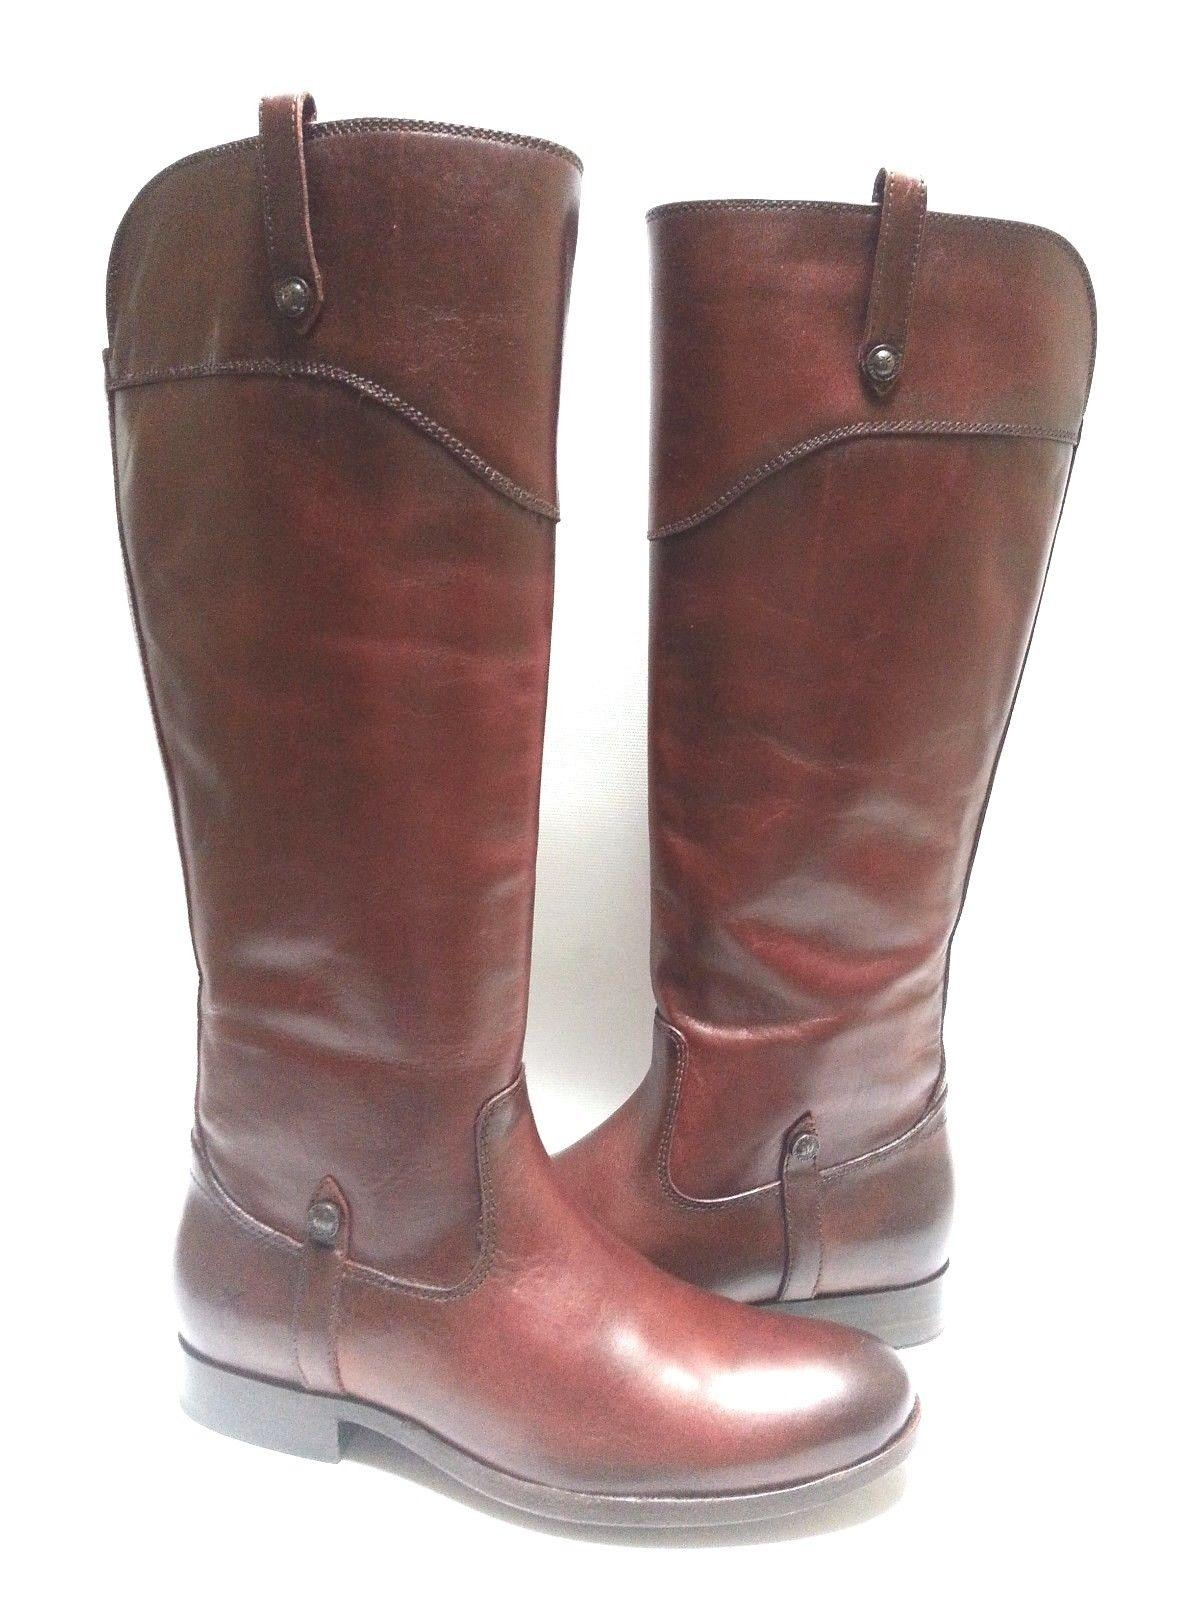 Frye Redwood Melissa Tab Tall Boots/Booties Size Size Boots/Booties US 10 Regular (M, B) 886d55